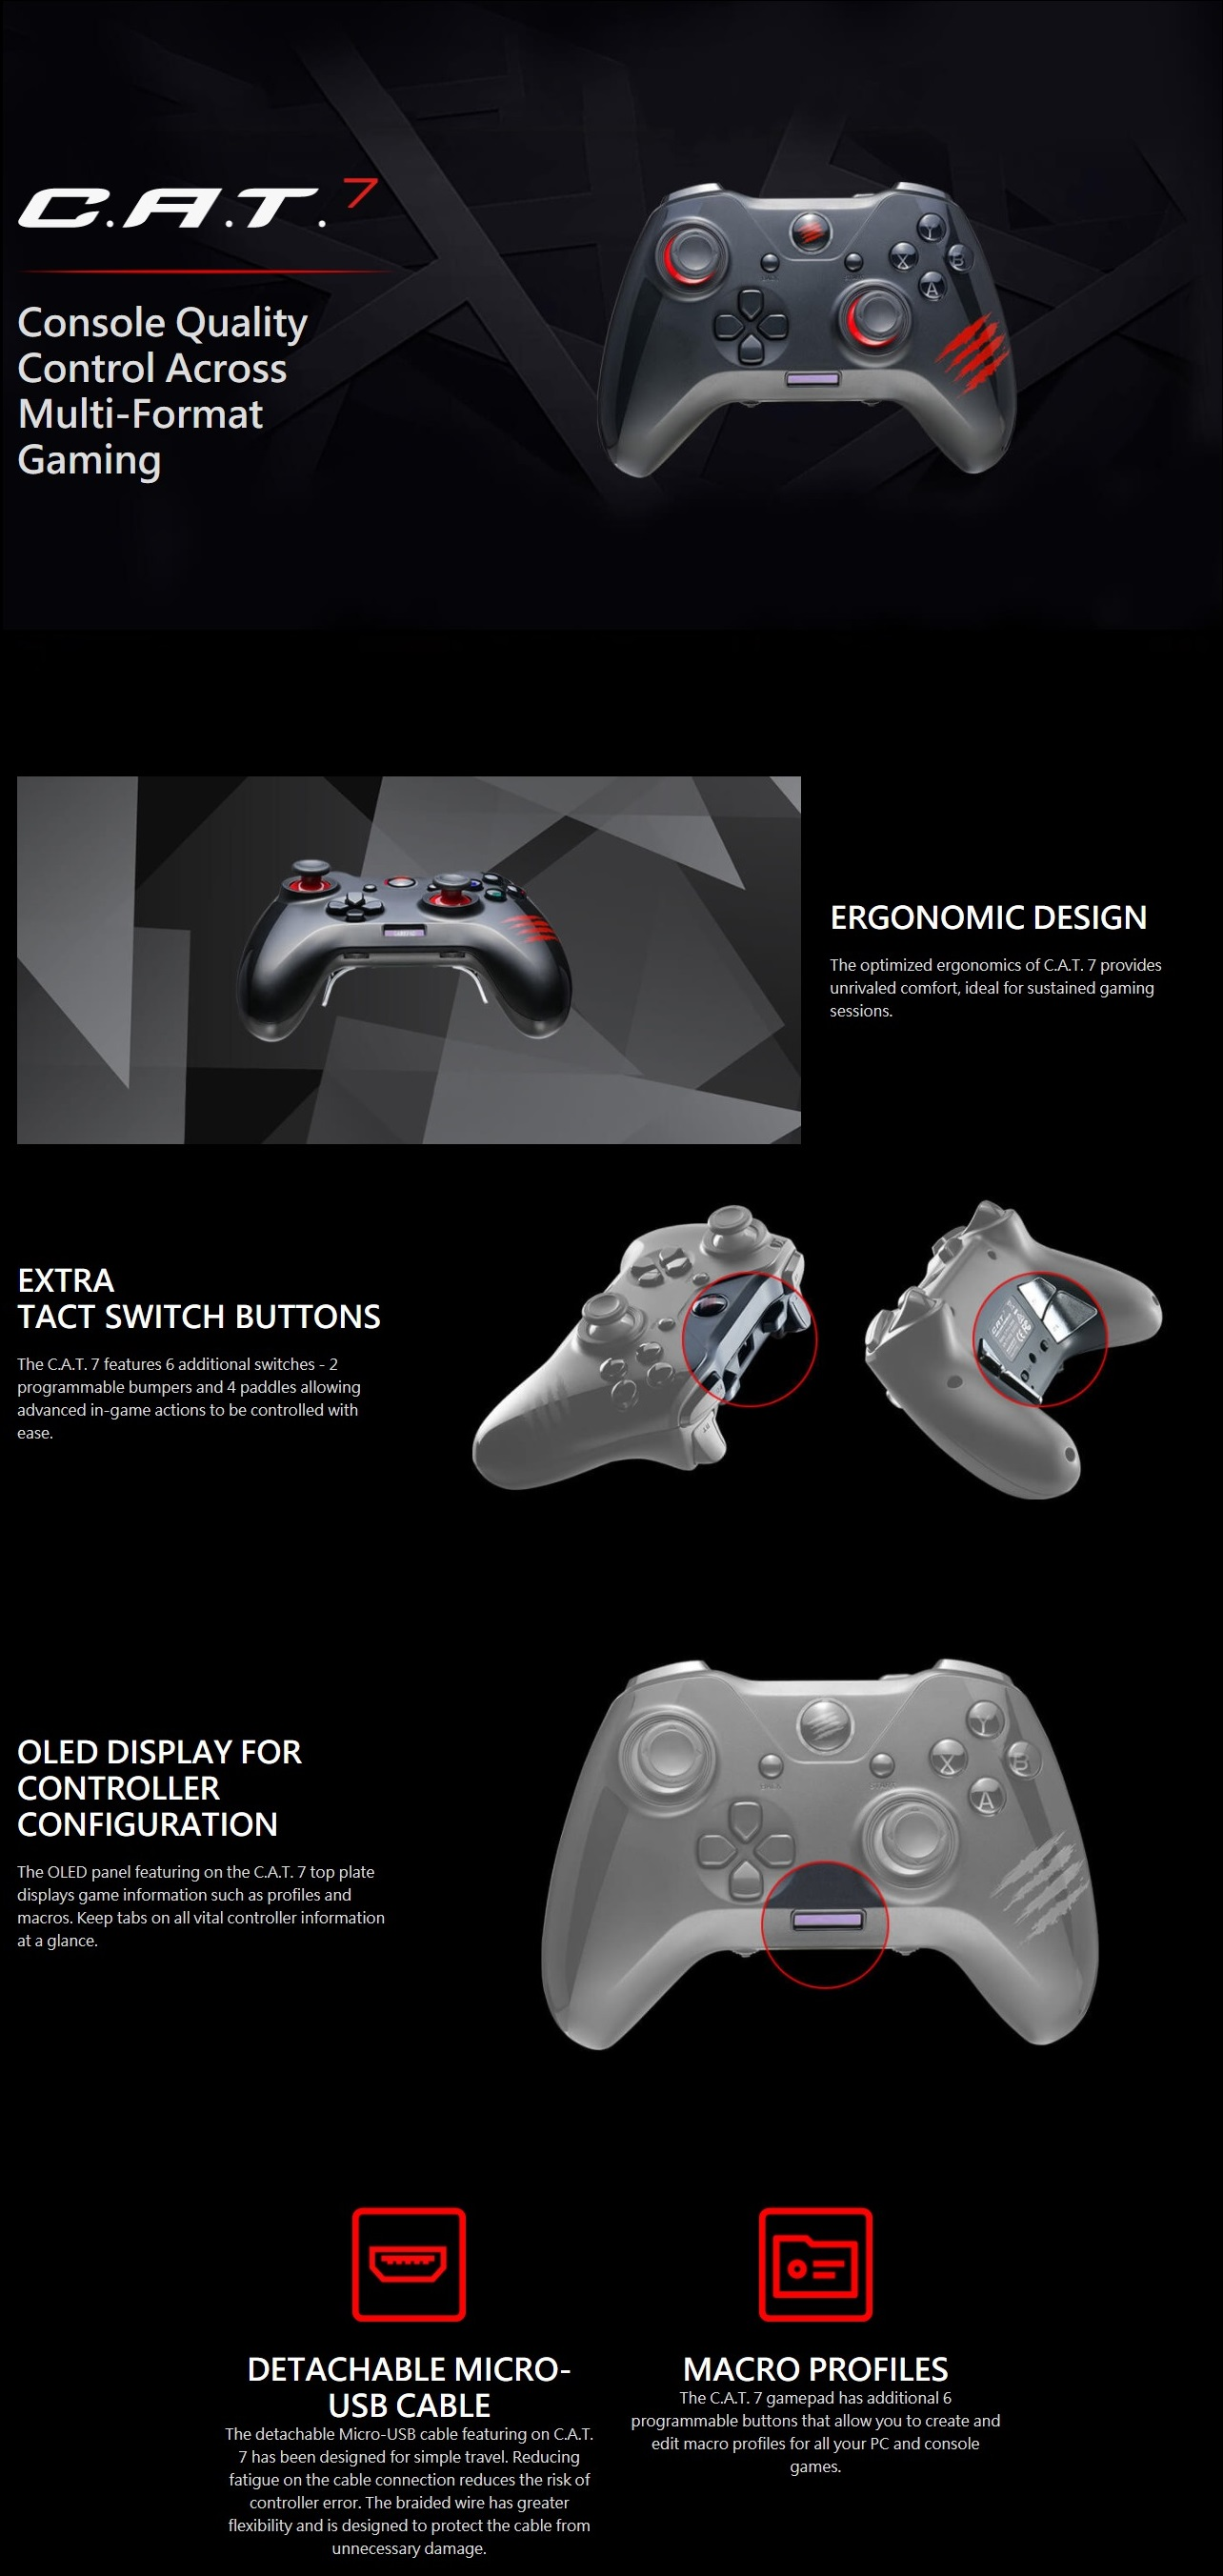 A large marketing image providing additional information about the product Mad Catz C.A.T. 7 Game Pad - Additional alt info not provided